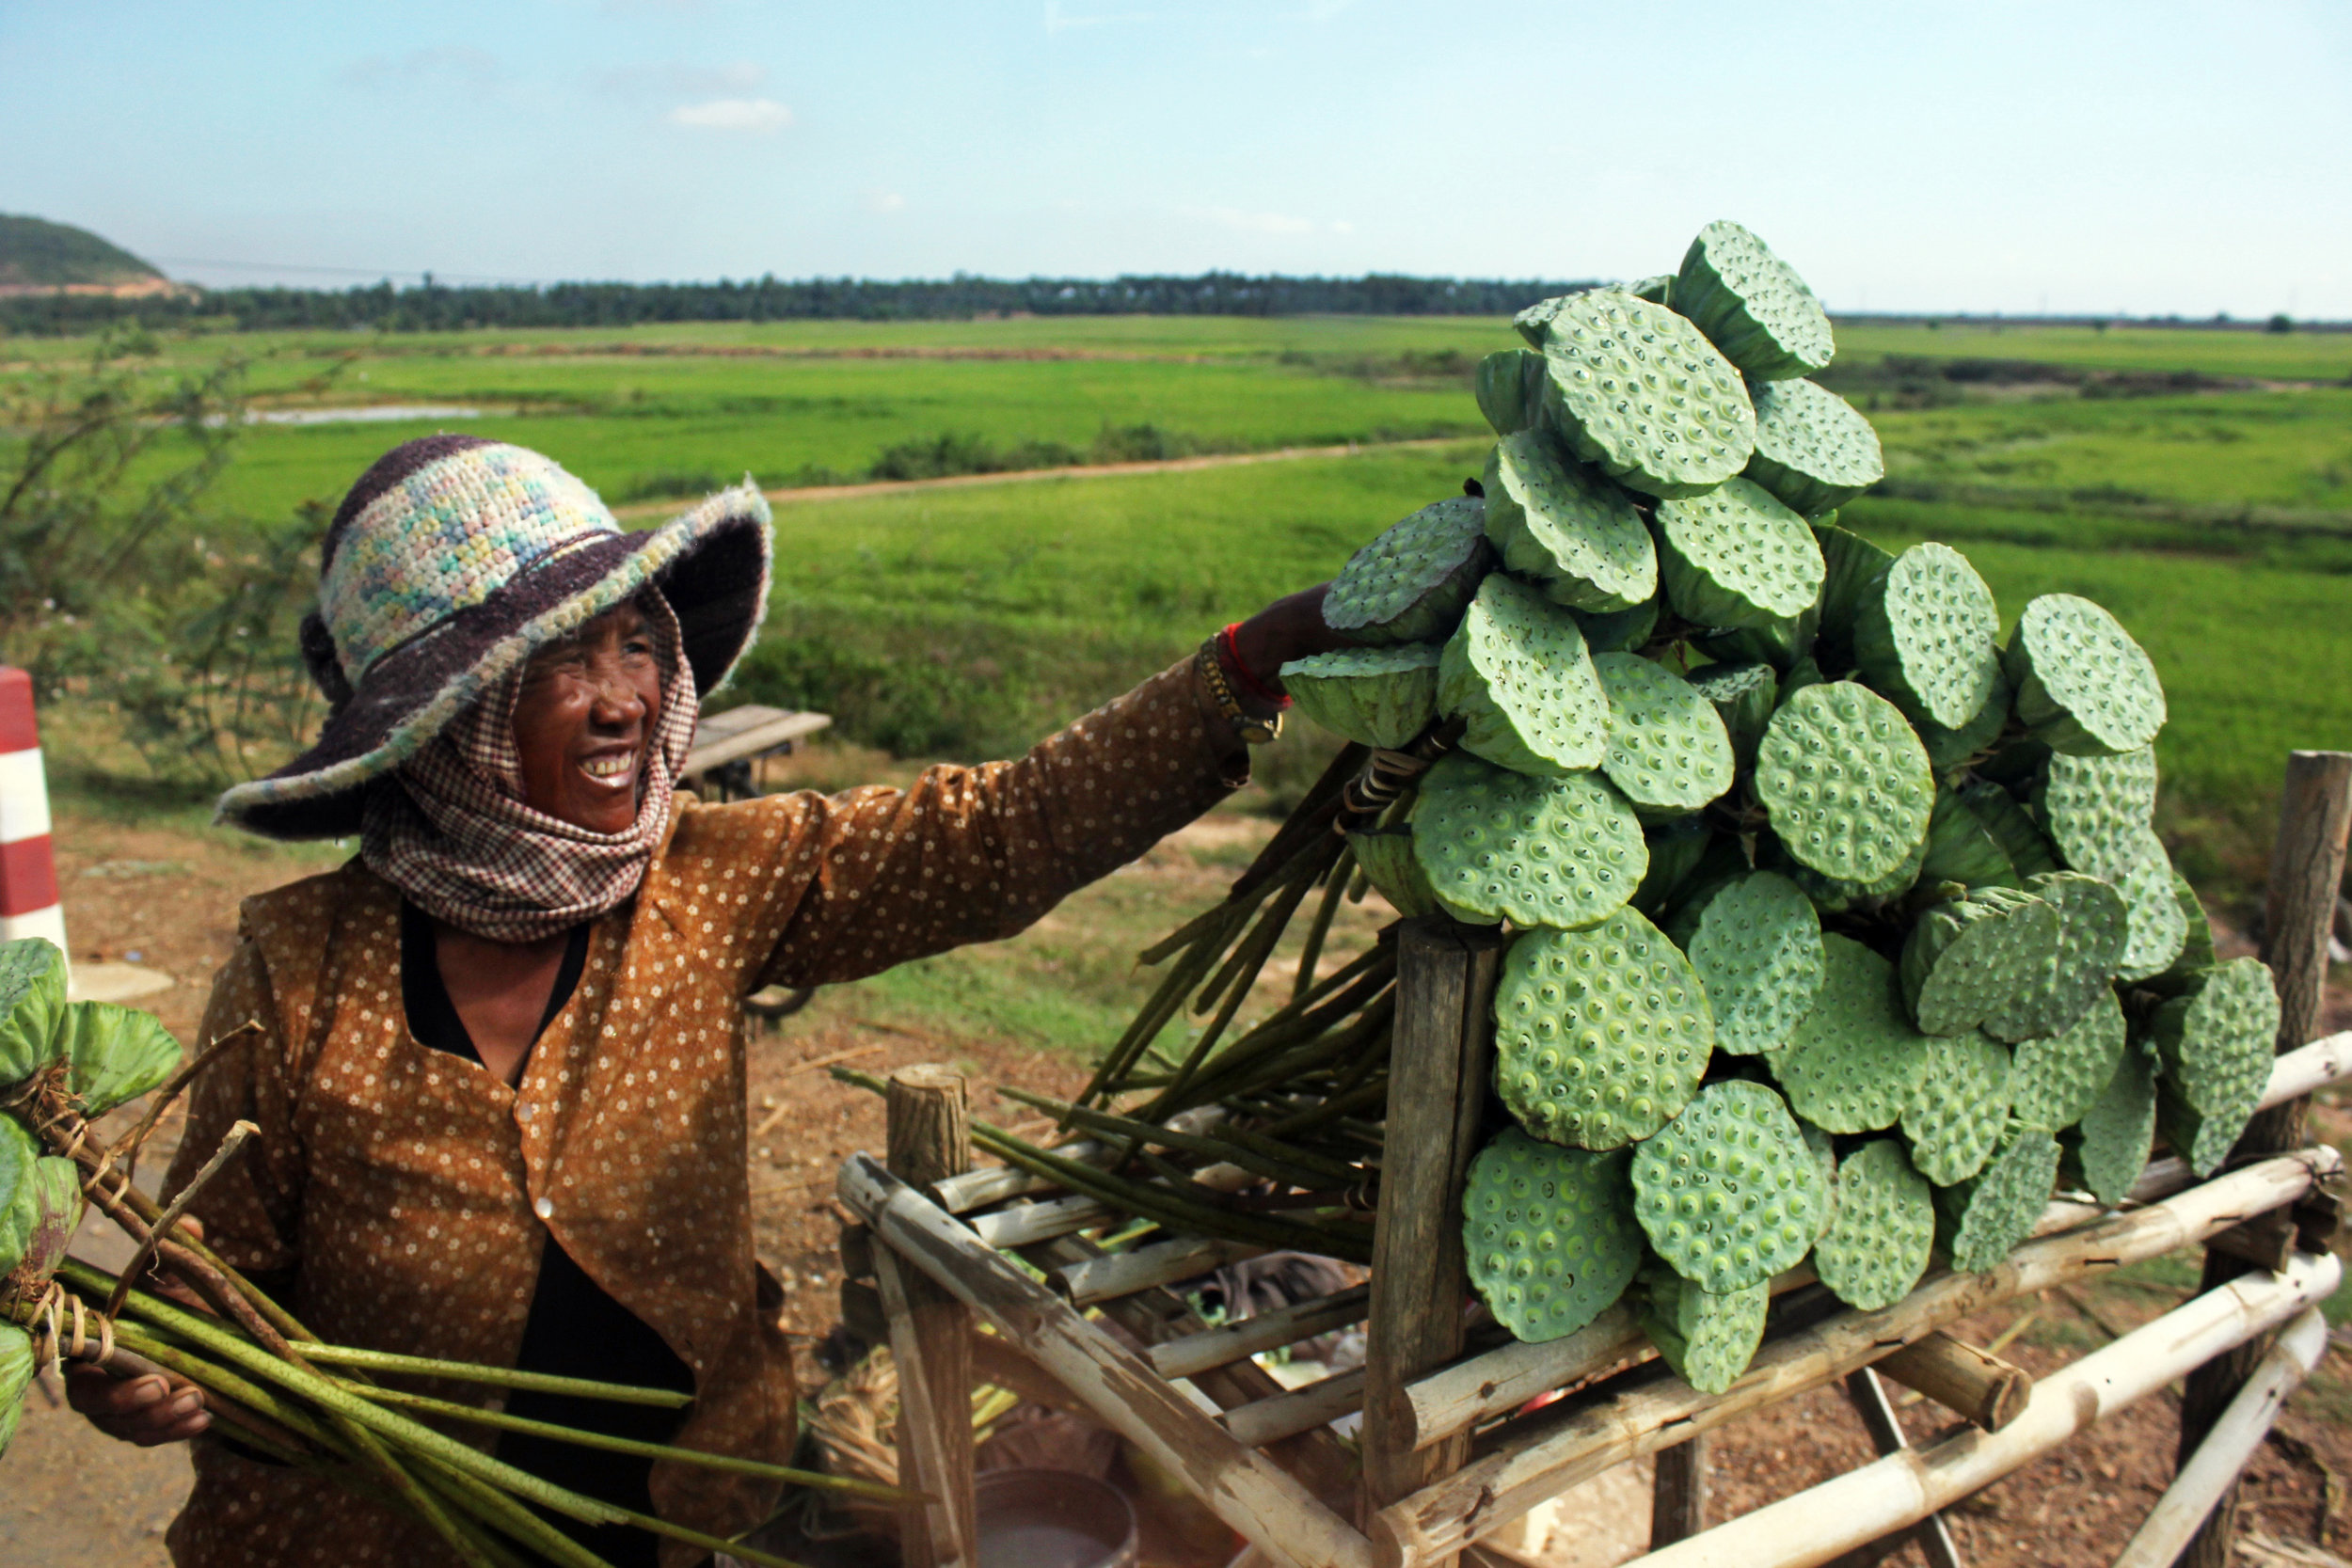 Woman selling lotus pods along the highway in Cambodia.